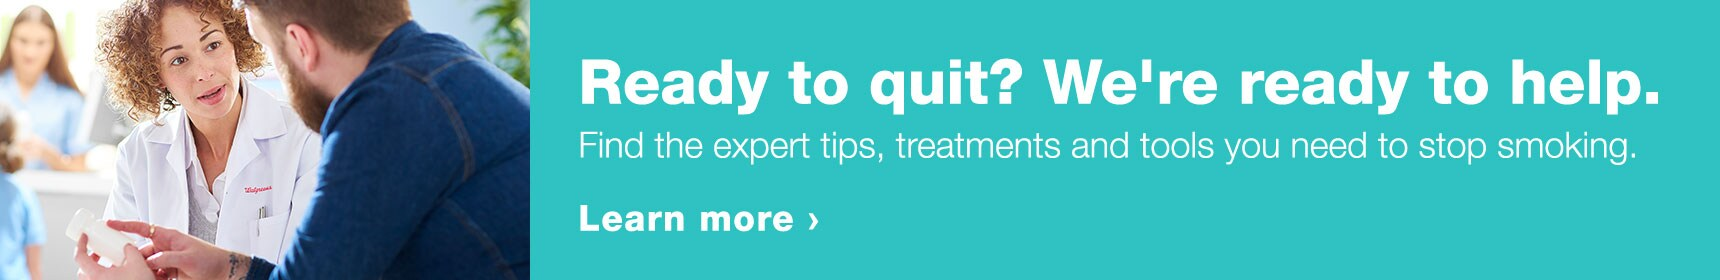 Ready to quit? We're ready to help. Find the expert tips, treatments and tools you need to stop smoking. Learn more.